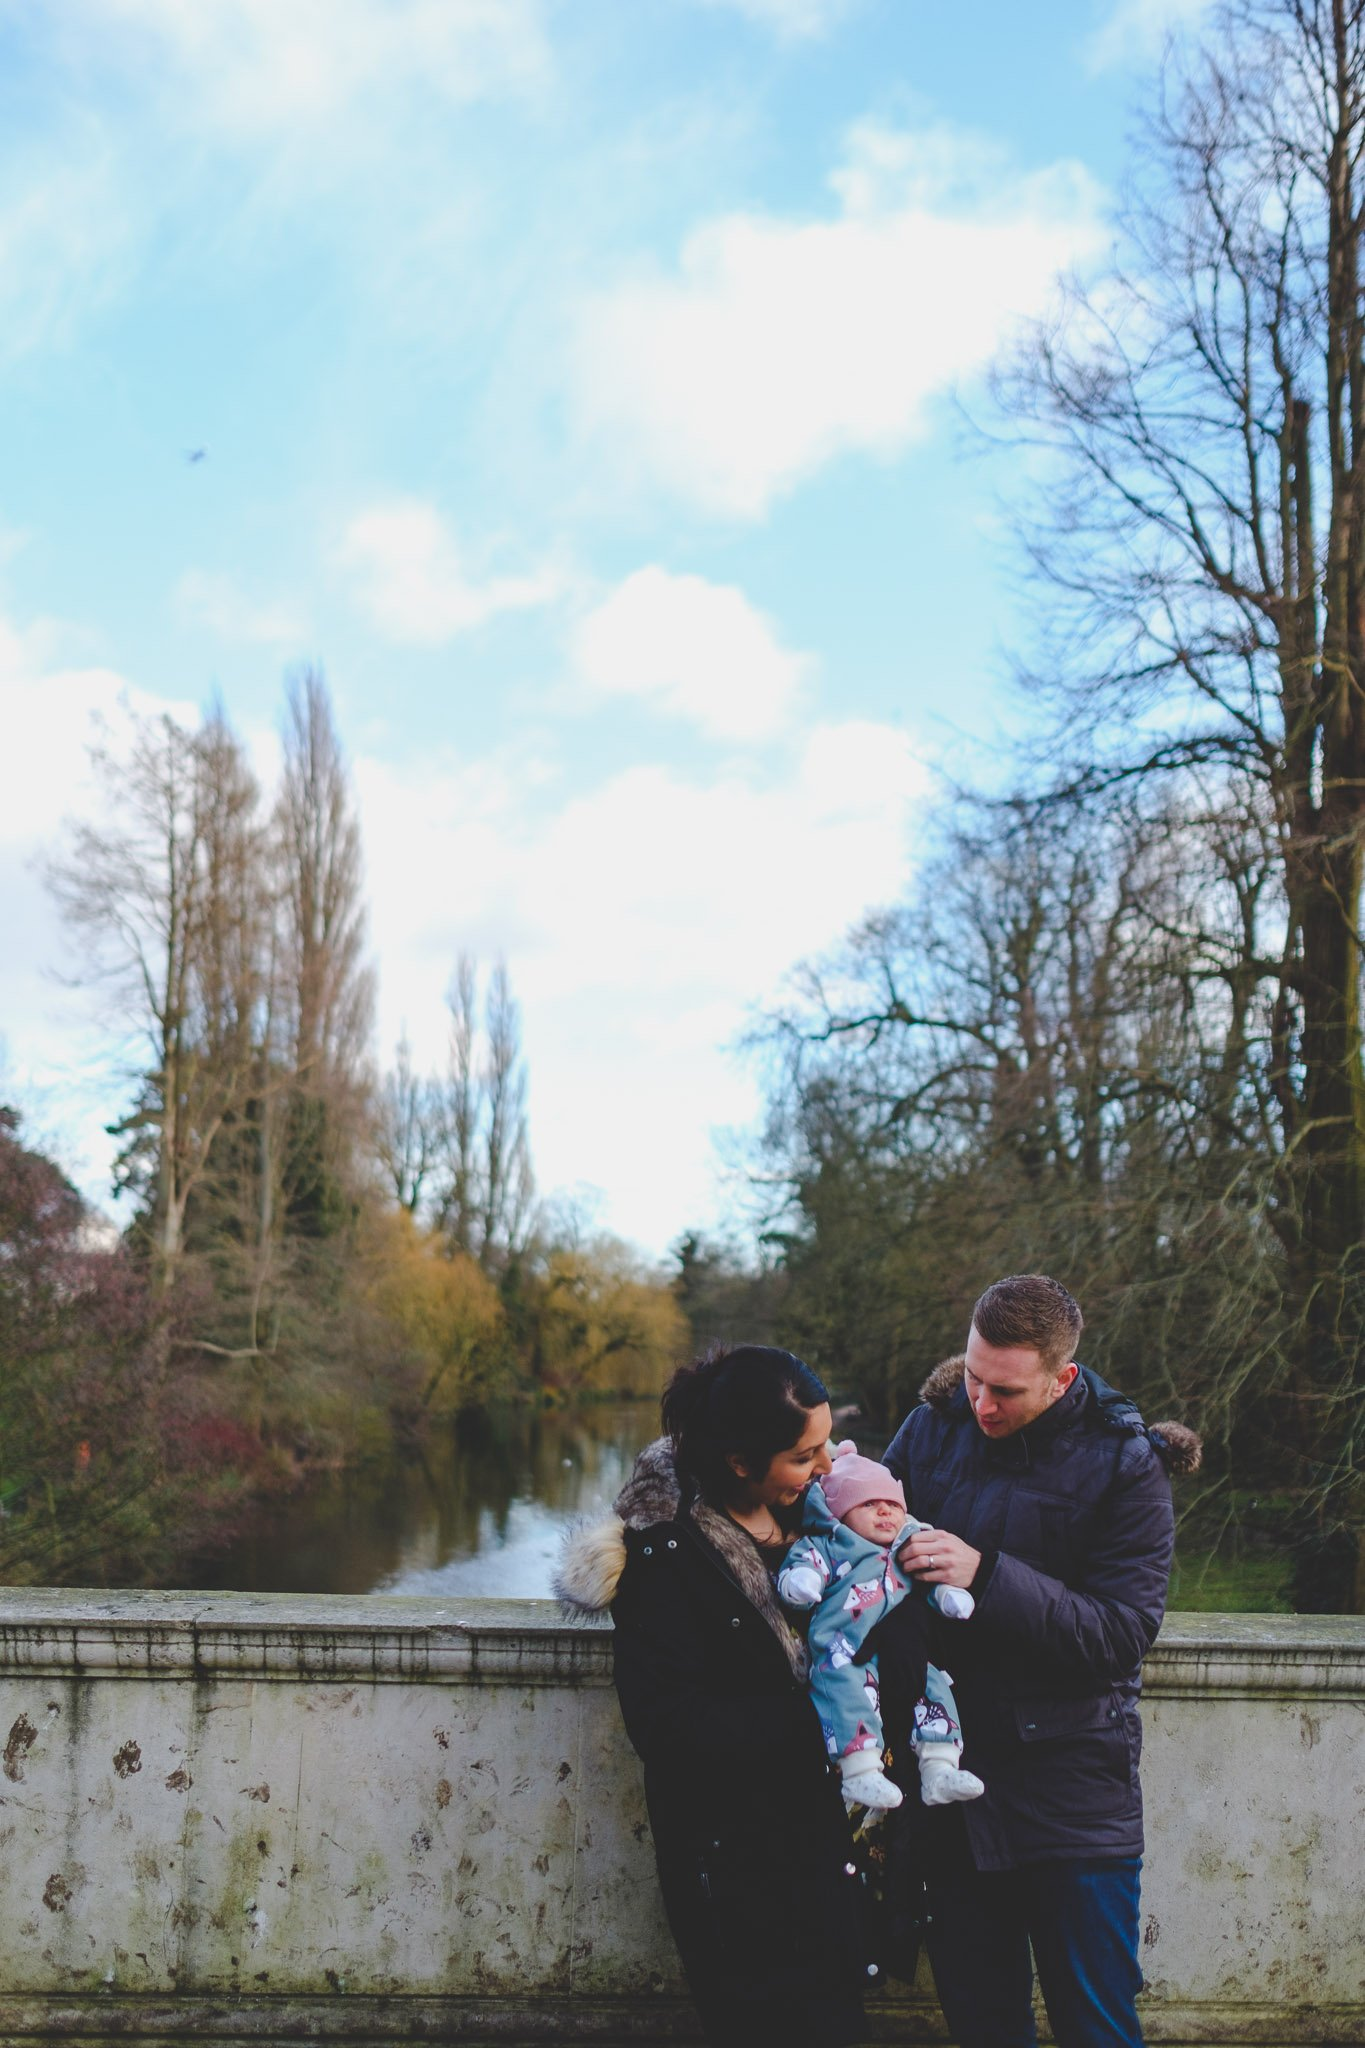 Mum, Dad & baby huddled in the cold at Chiswick House and Gardens Lifestyle photography Chiswick